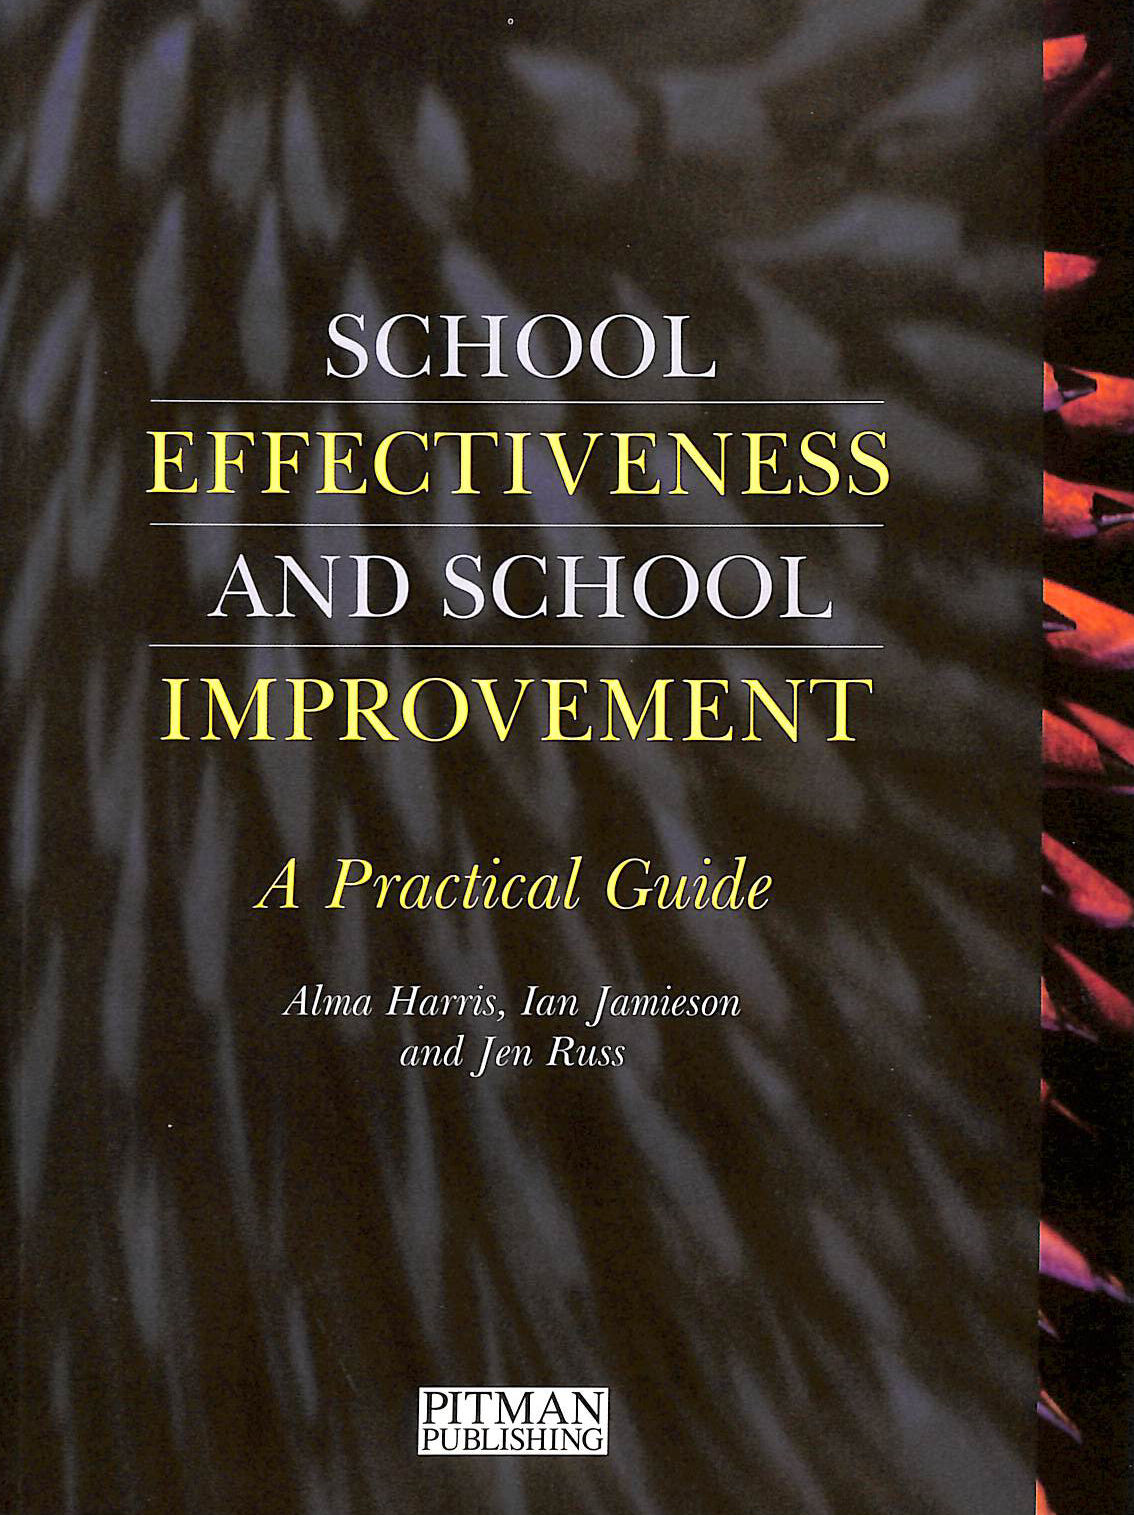 Image for School Effectiveness and School Improvement: A Practical Guide for Schools